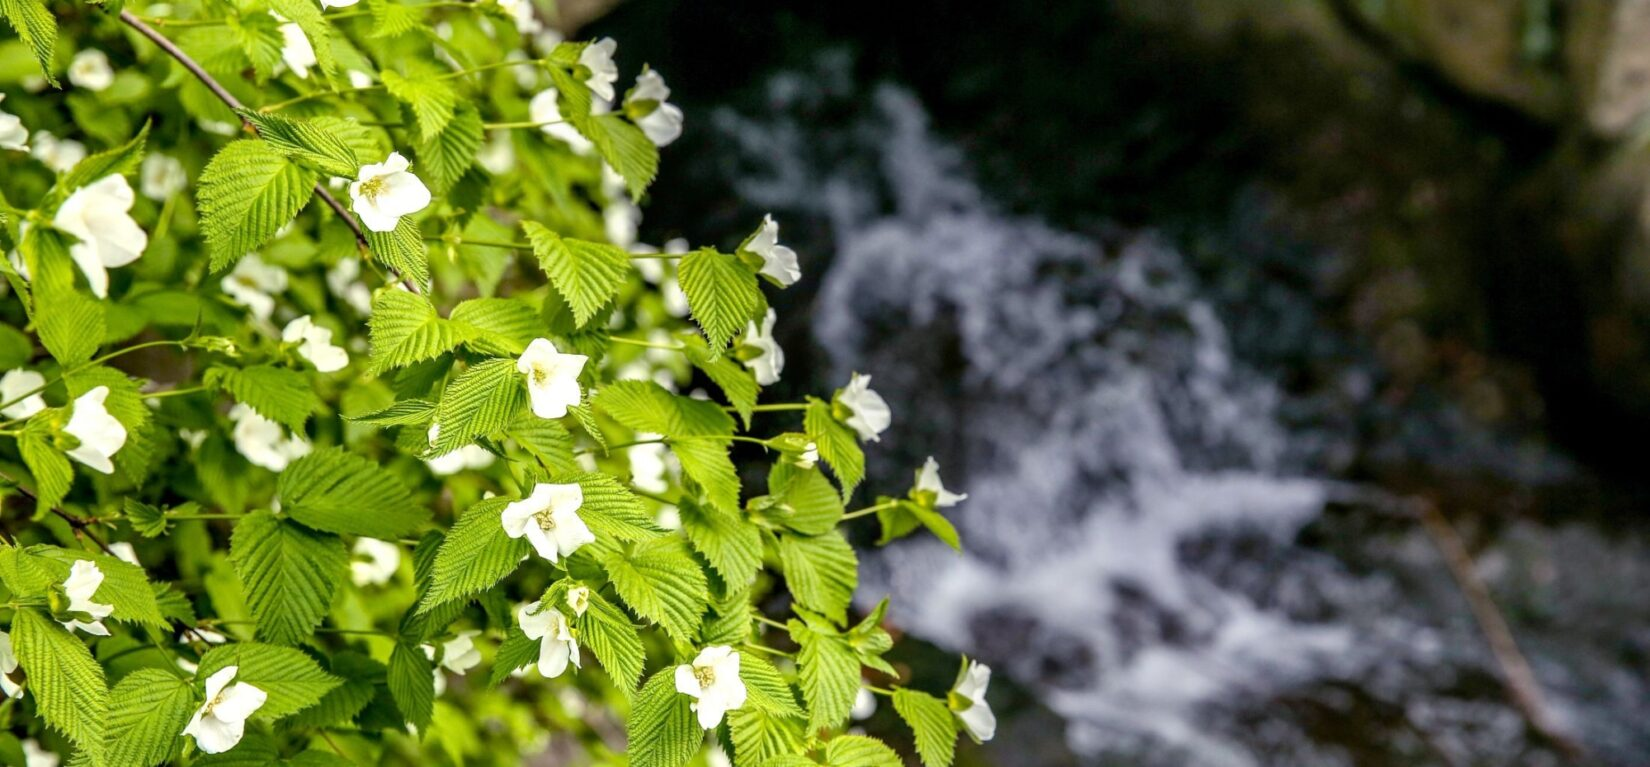 The Ravine flows in the background, behind a brightly-lit bough of green leaves and small, white flowers.